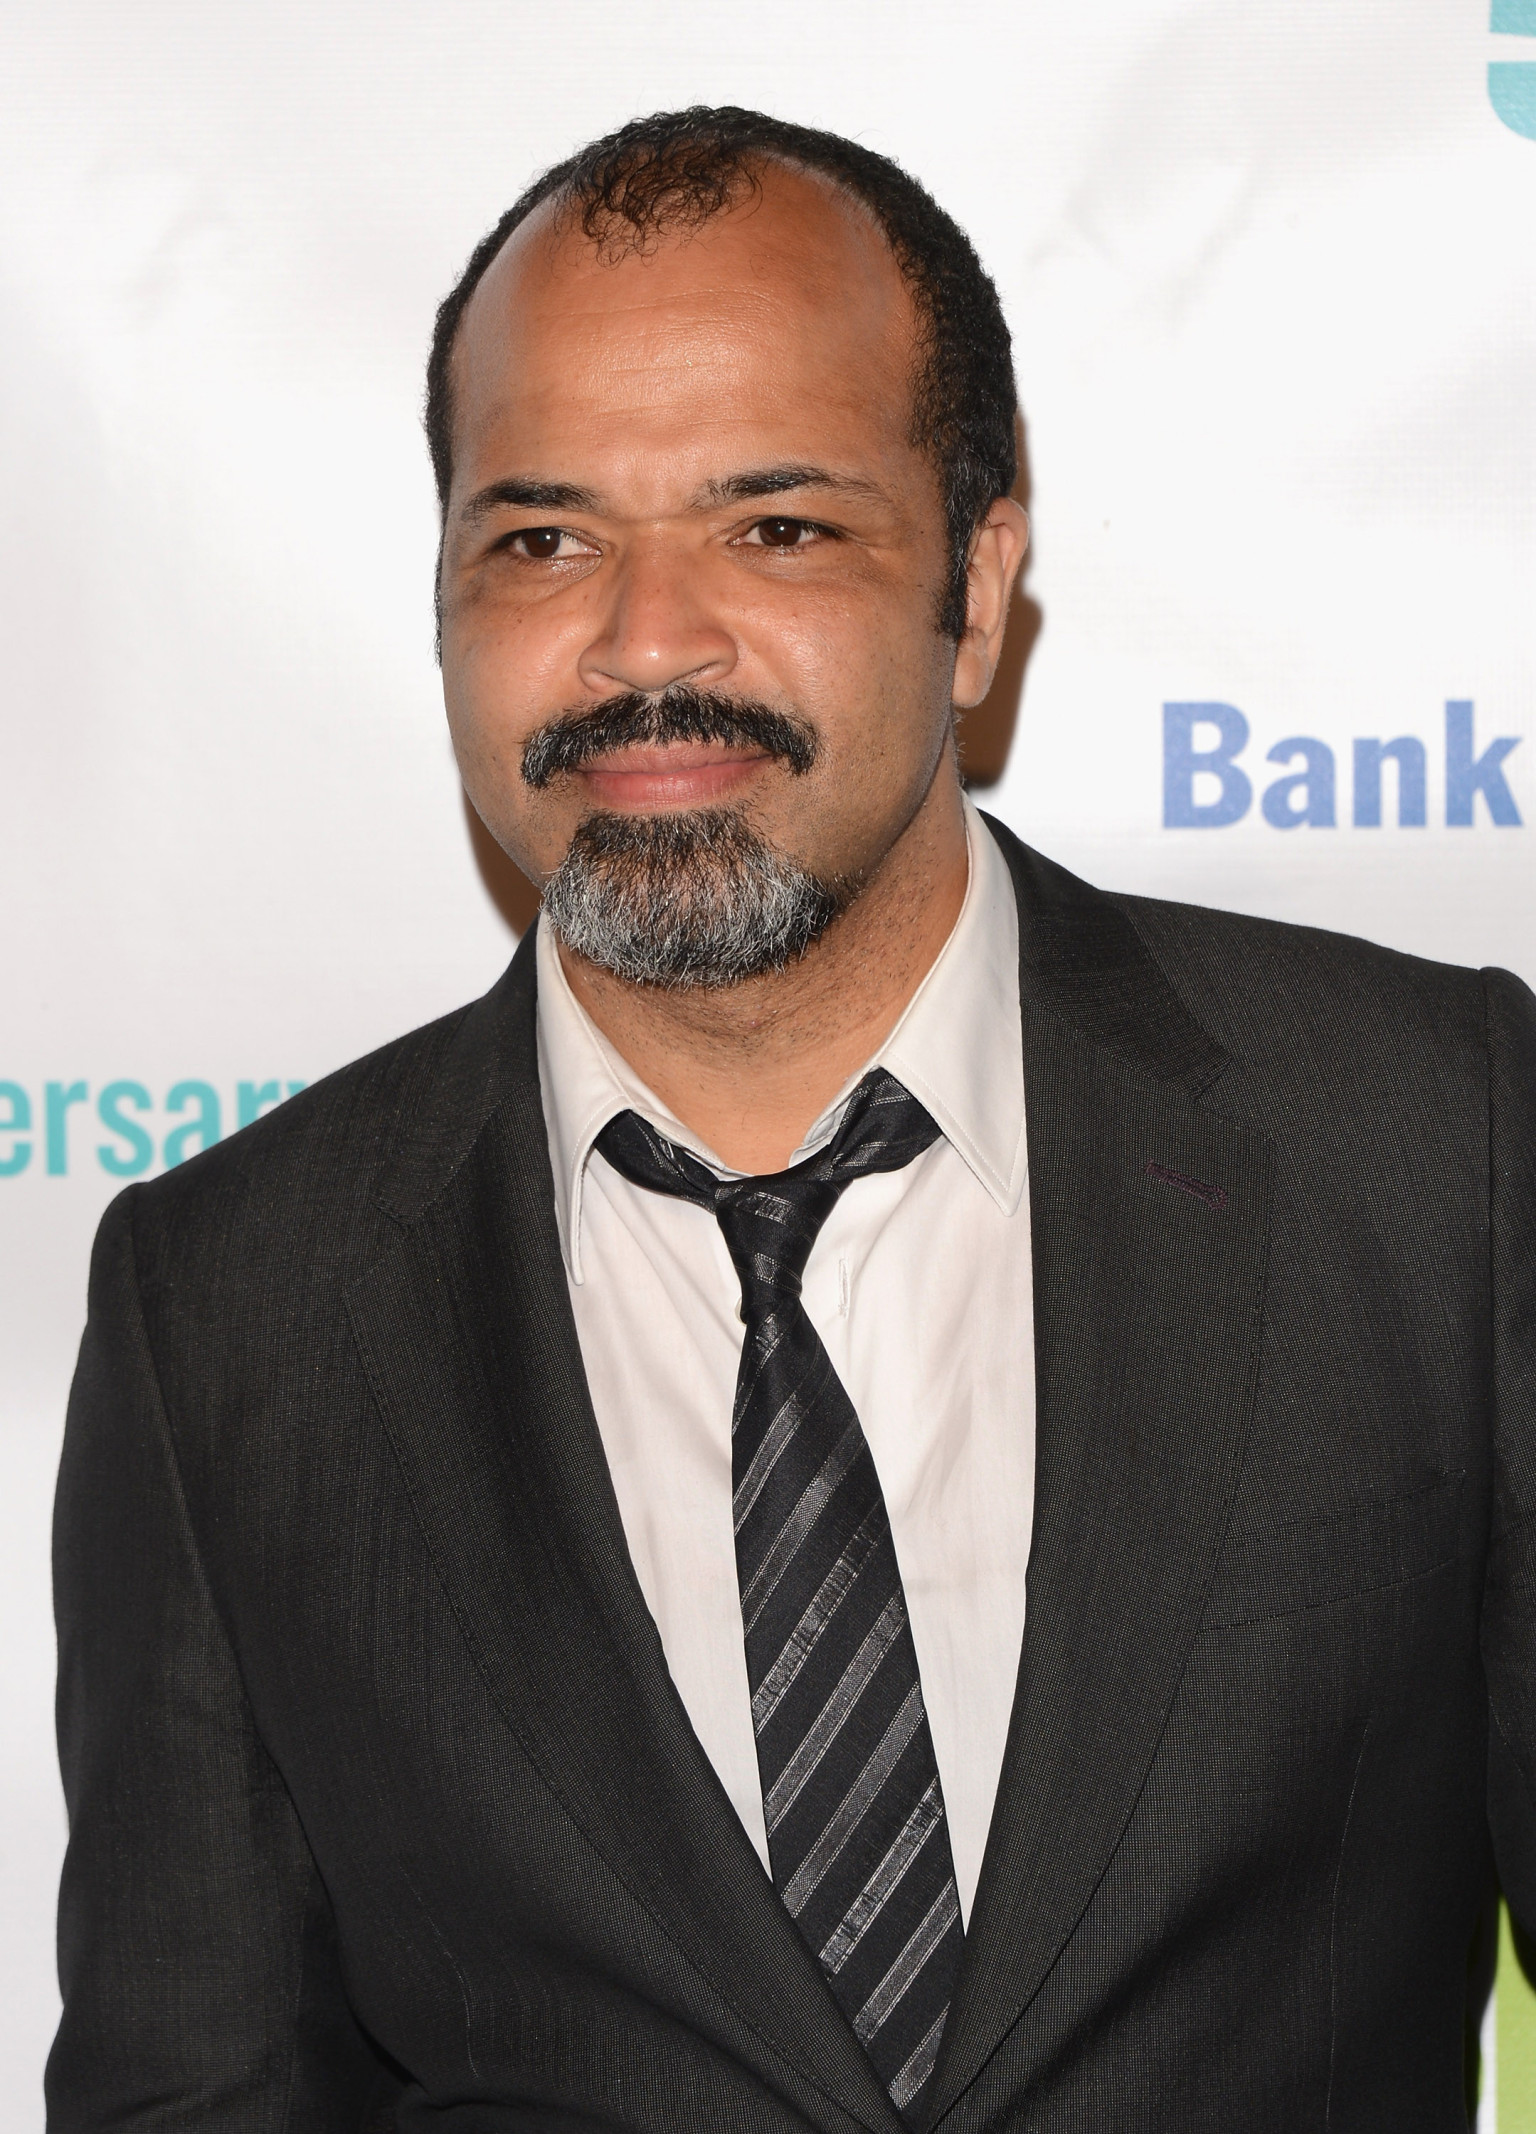 jeffrey wright biojeffrey wright country blues, jeffrey wright parents, jeffrey wright instagram, jeffrey wright twitter, jeffrey wright net worth, jeffrey wright oxford, jeffrey wright wiki, jeffrey wright bio, jeffrey wright boardwalk empire, jeffrey wright i'm a man, jeffrey wright hunger games, jeffrey wright westworld, jeffrey wright daniel craig, jeffrey wright height, jeffrey wright imdb, jeffrey wright ethnicity, jeffrey wright divorce, jeffrey wright shaft, jeffrey wright teacher, jeffrey wright basquiat